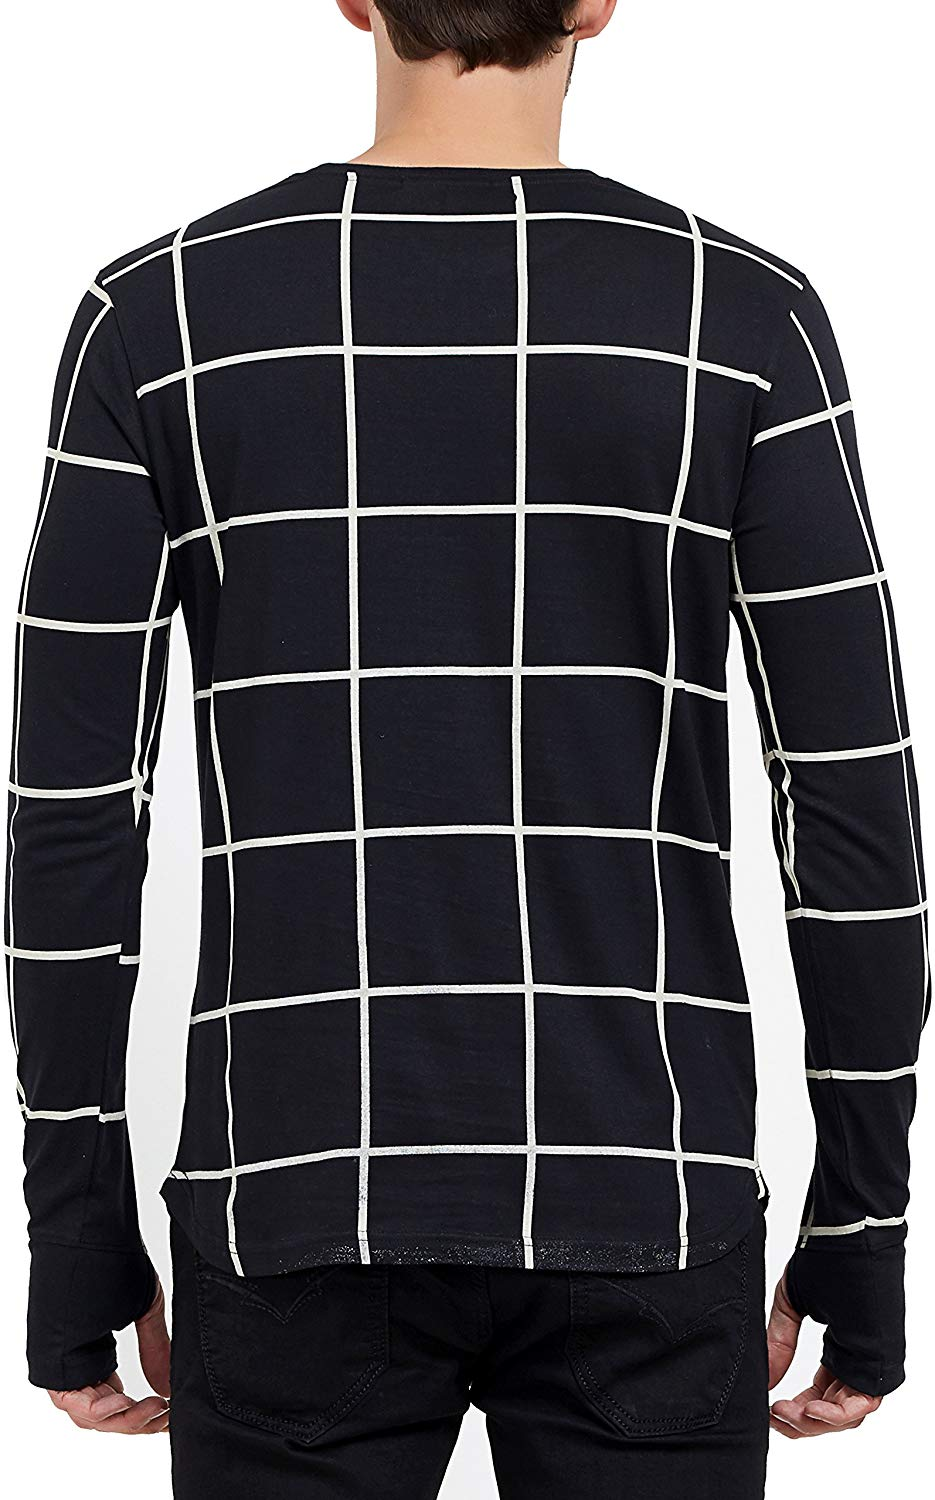 Men's Fullsleeve Round Neck Checkered Thumb Hole Black T-Shirt image 4